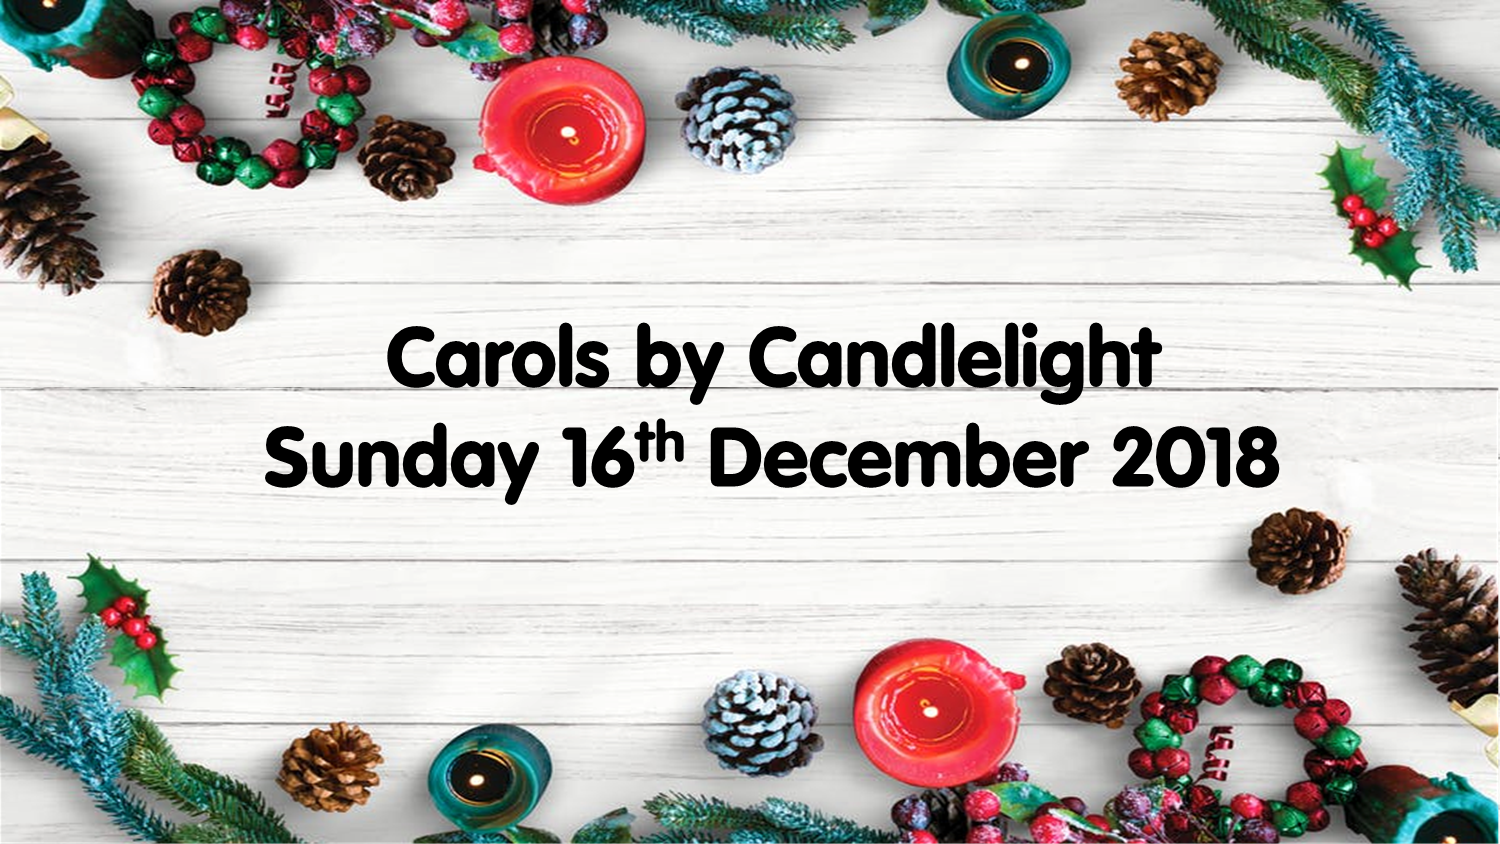 Carols by Candlelight is coming!!